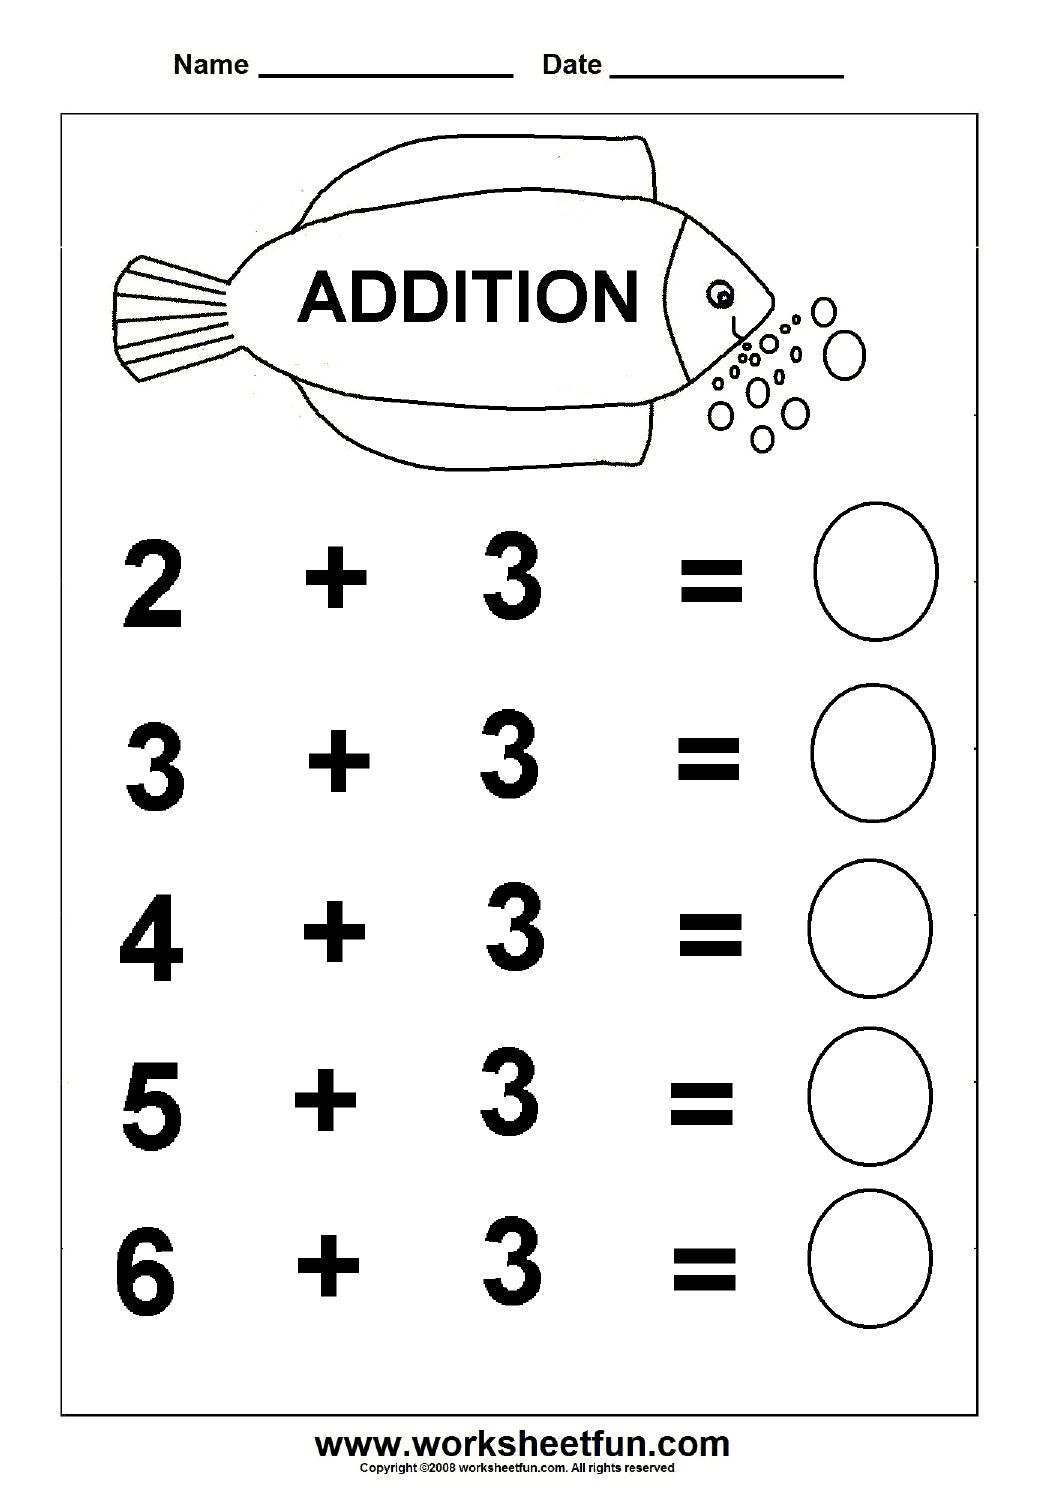 5 Addition And Subtraction Worksheets For Grade 3 In 2020